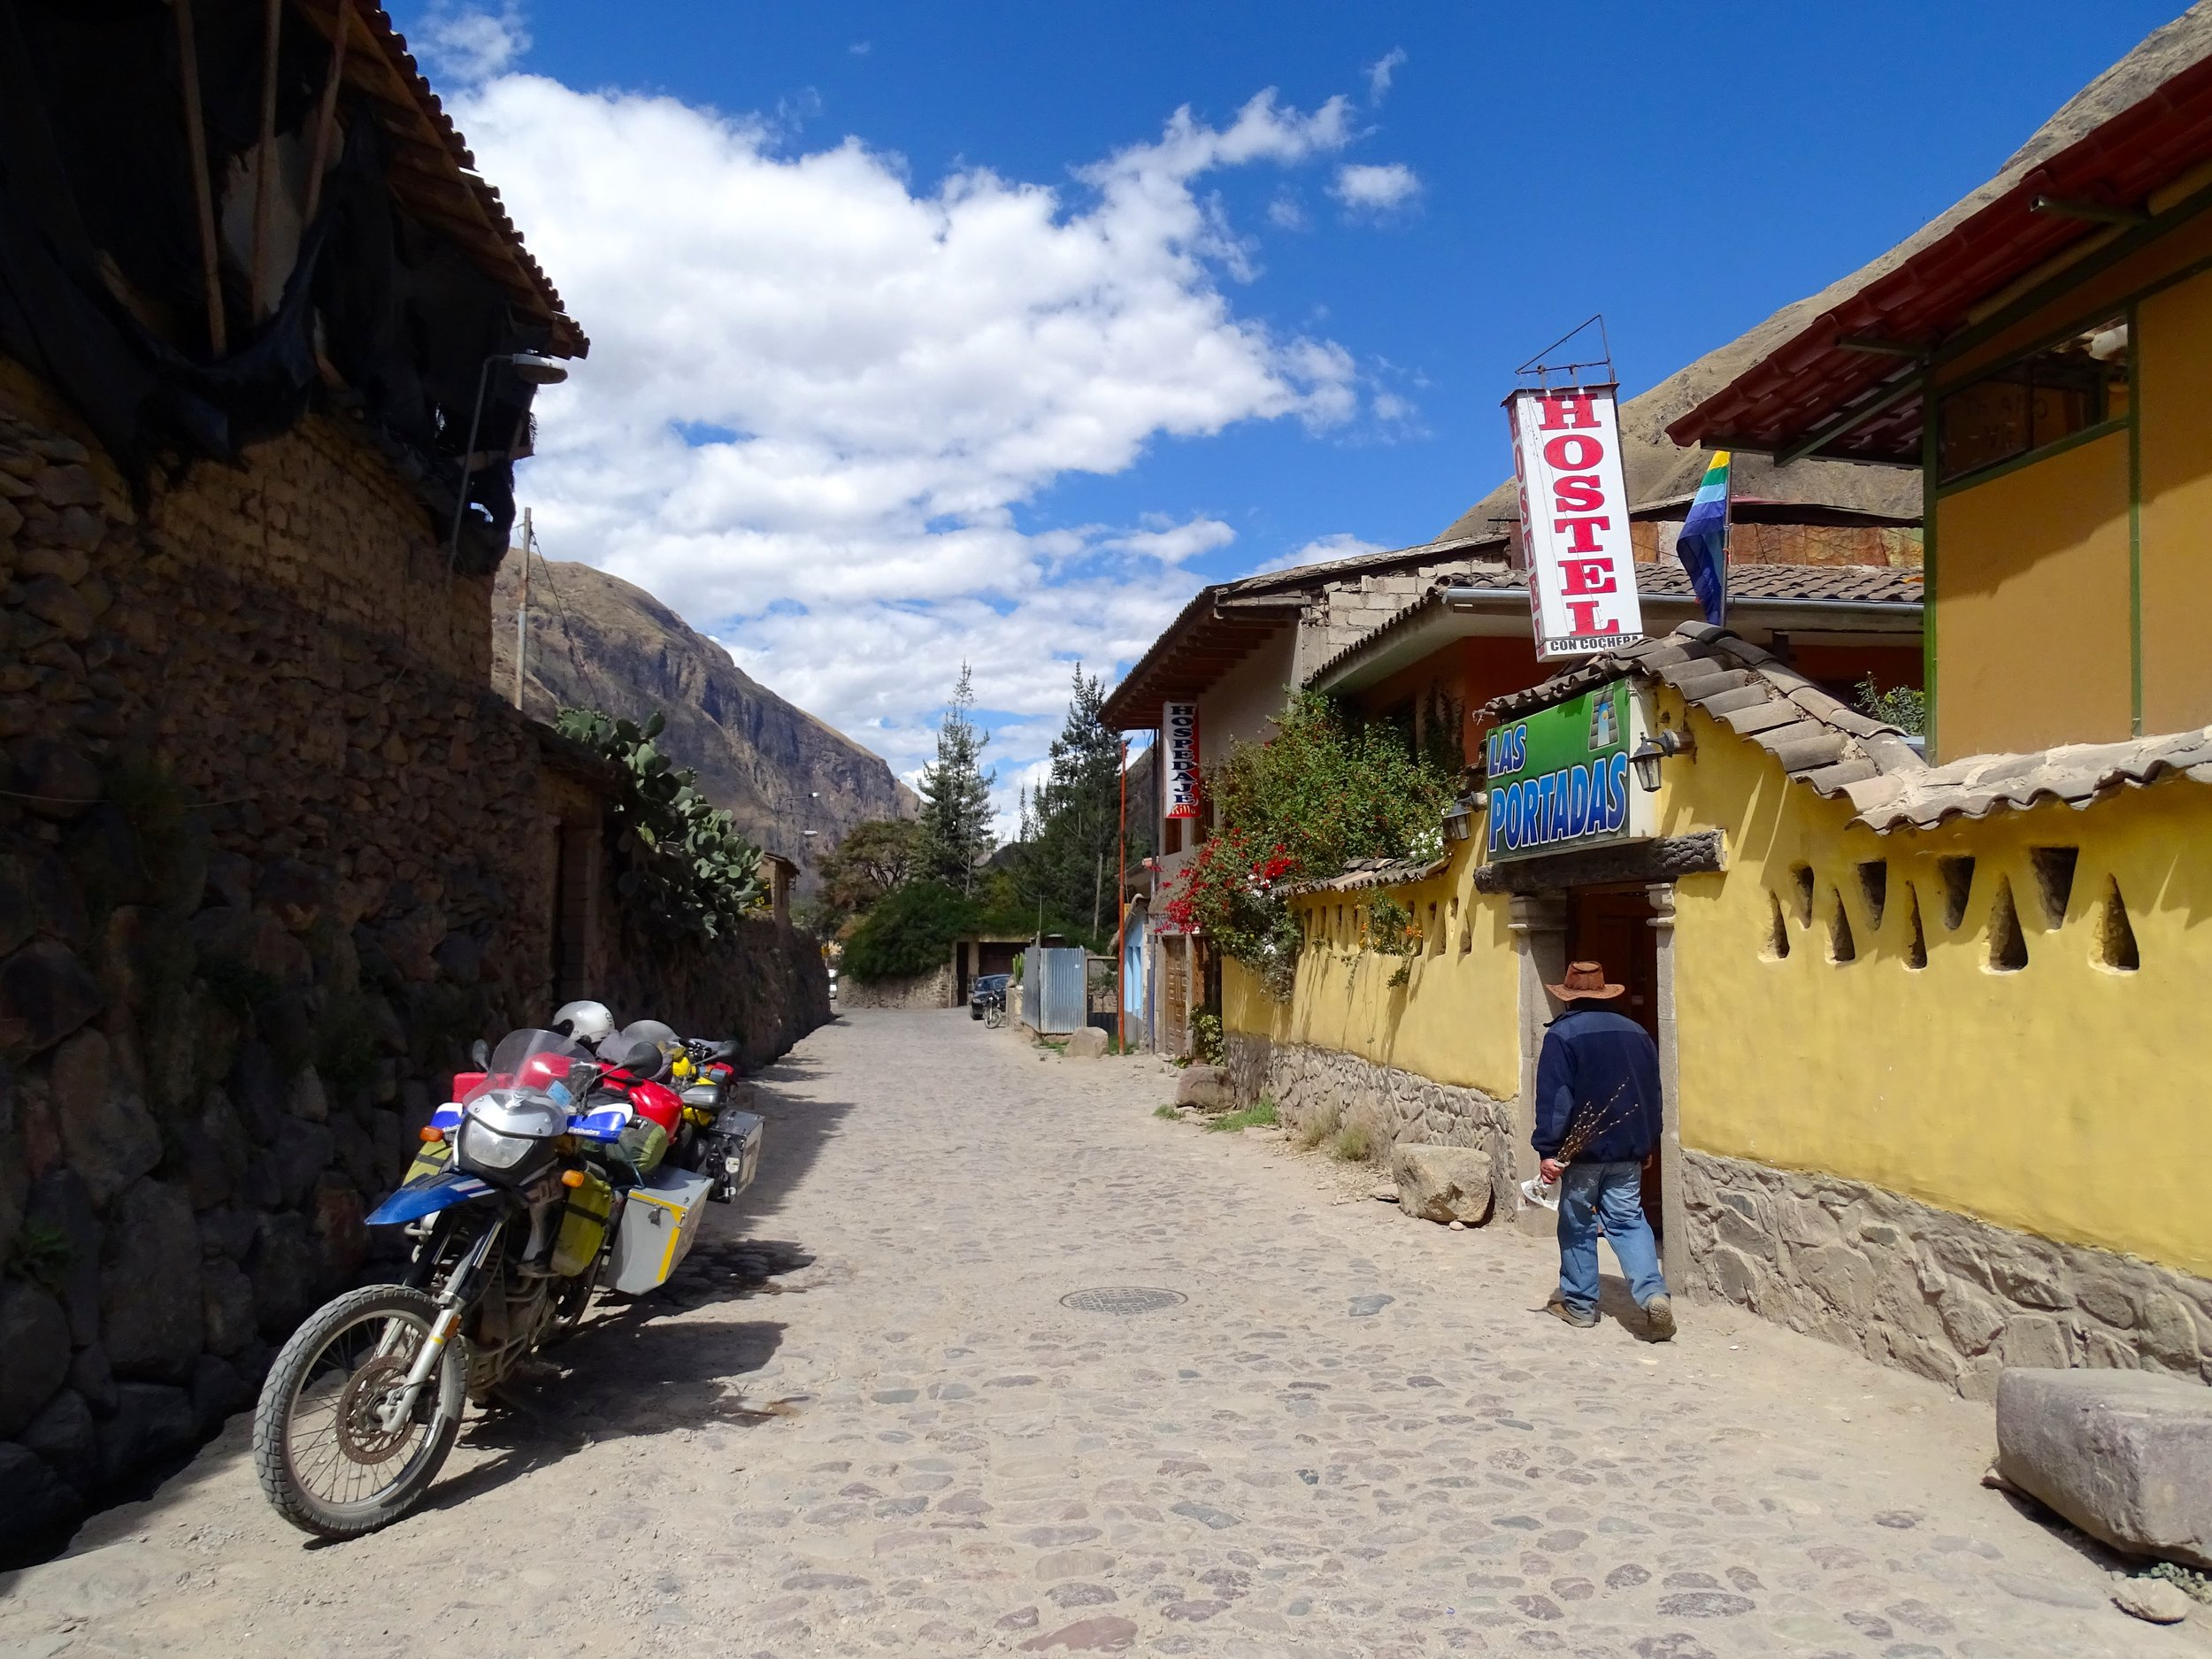 Outside our hostel in Ollantaytambo.